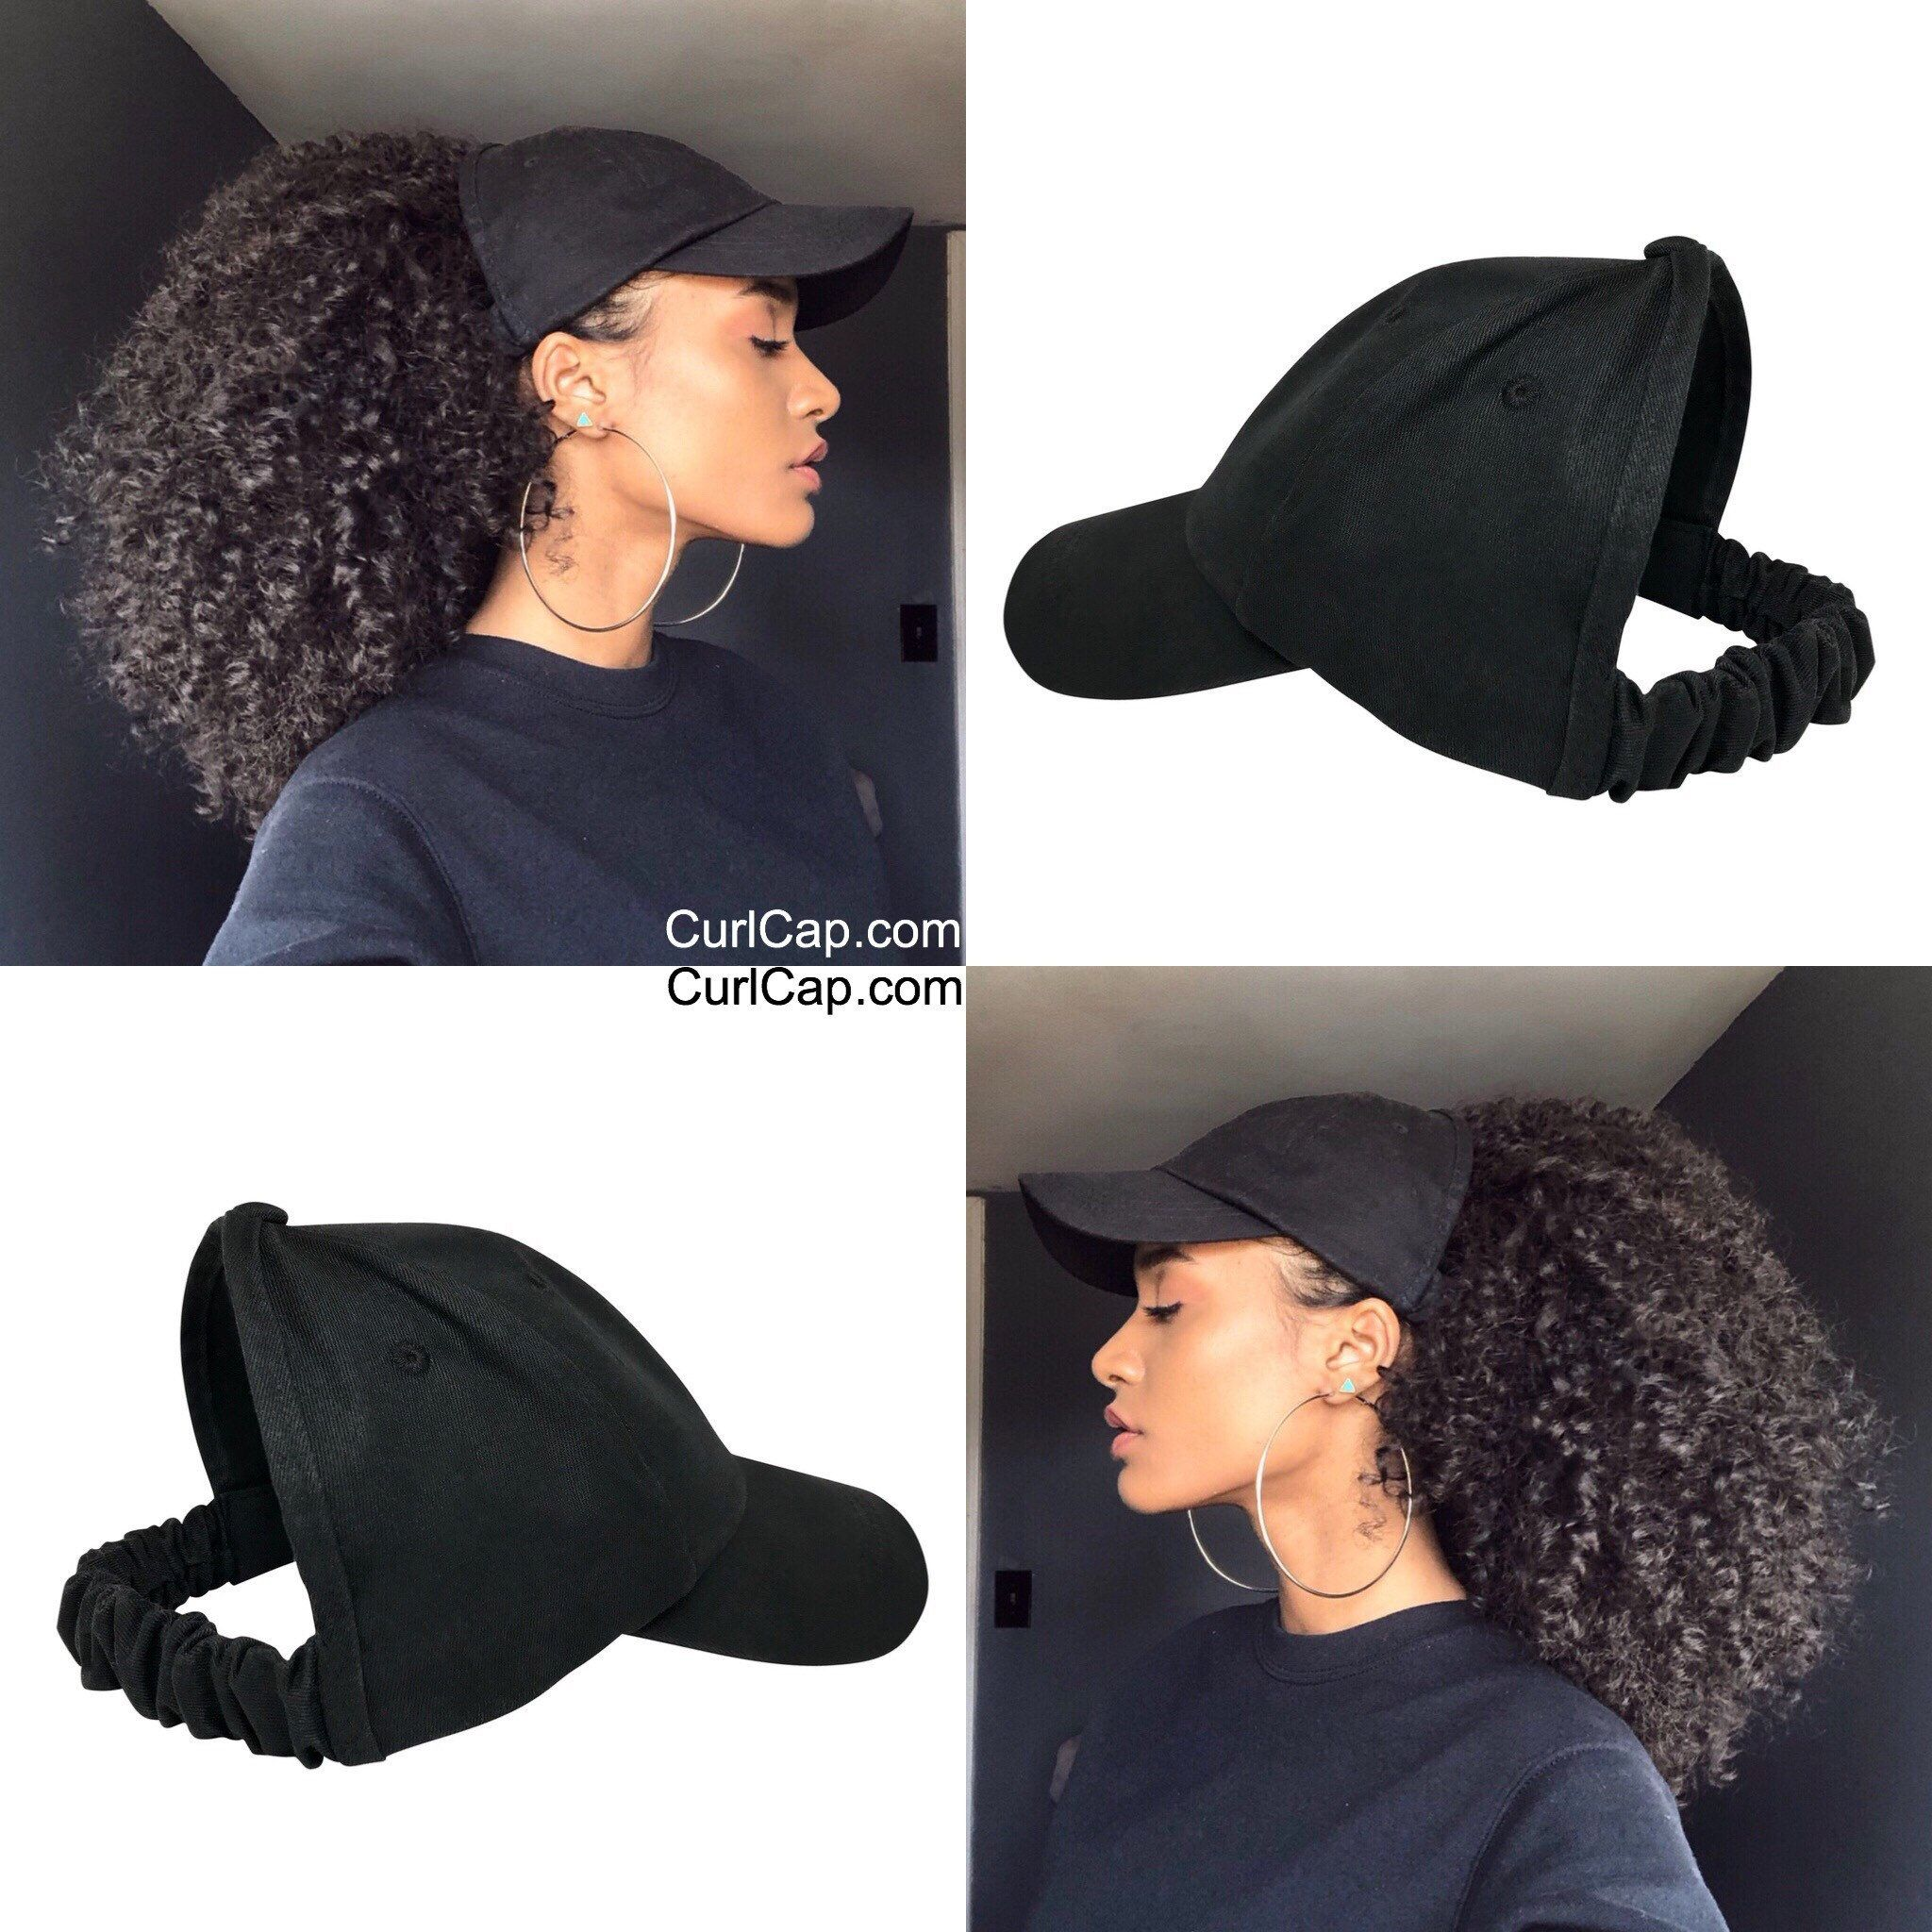 The Classic Curl Cap Is The Must Have Accessory This Year Comes With Satin Lining Protect Y Natural Hair Styles Curly Hair Styles Naturally Curly Hair Styles